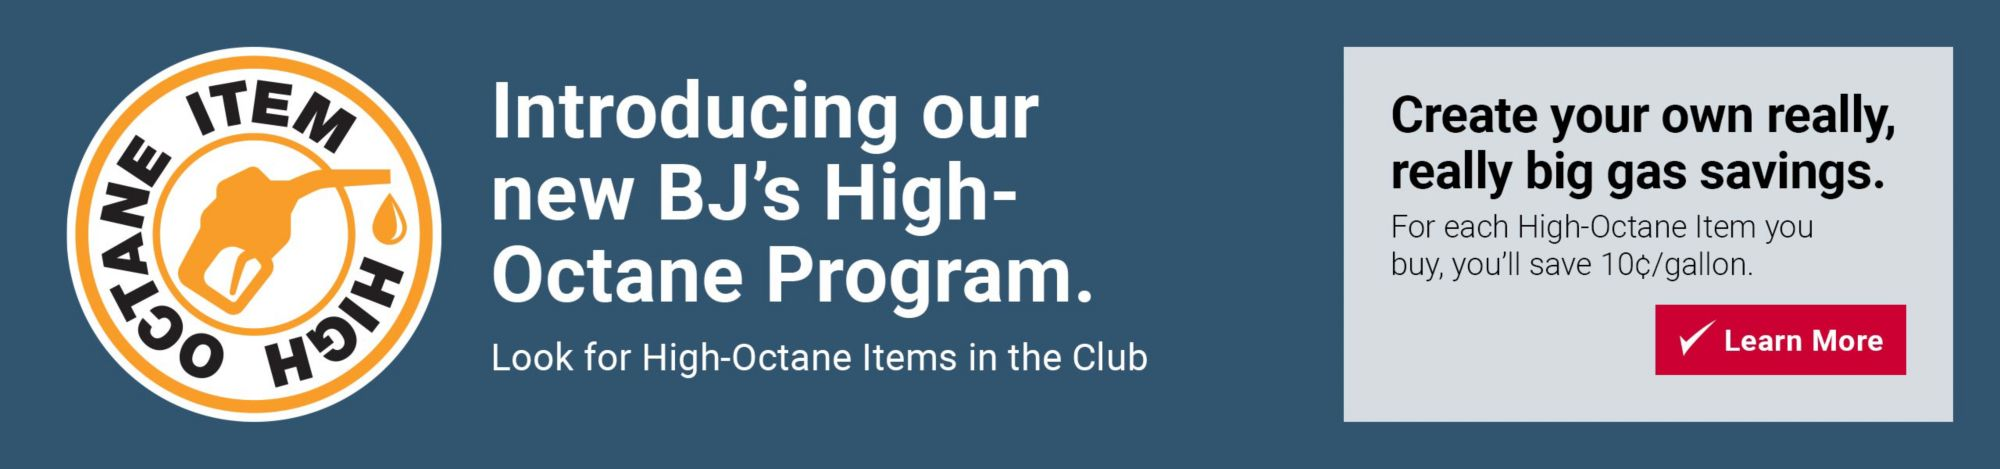 Introducing our new High Octane Gas Program. Look for Items with High Octane logo in the club. For each High Octane Item you buy, you'll save 10 cents per gallon. Click to learn more.